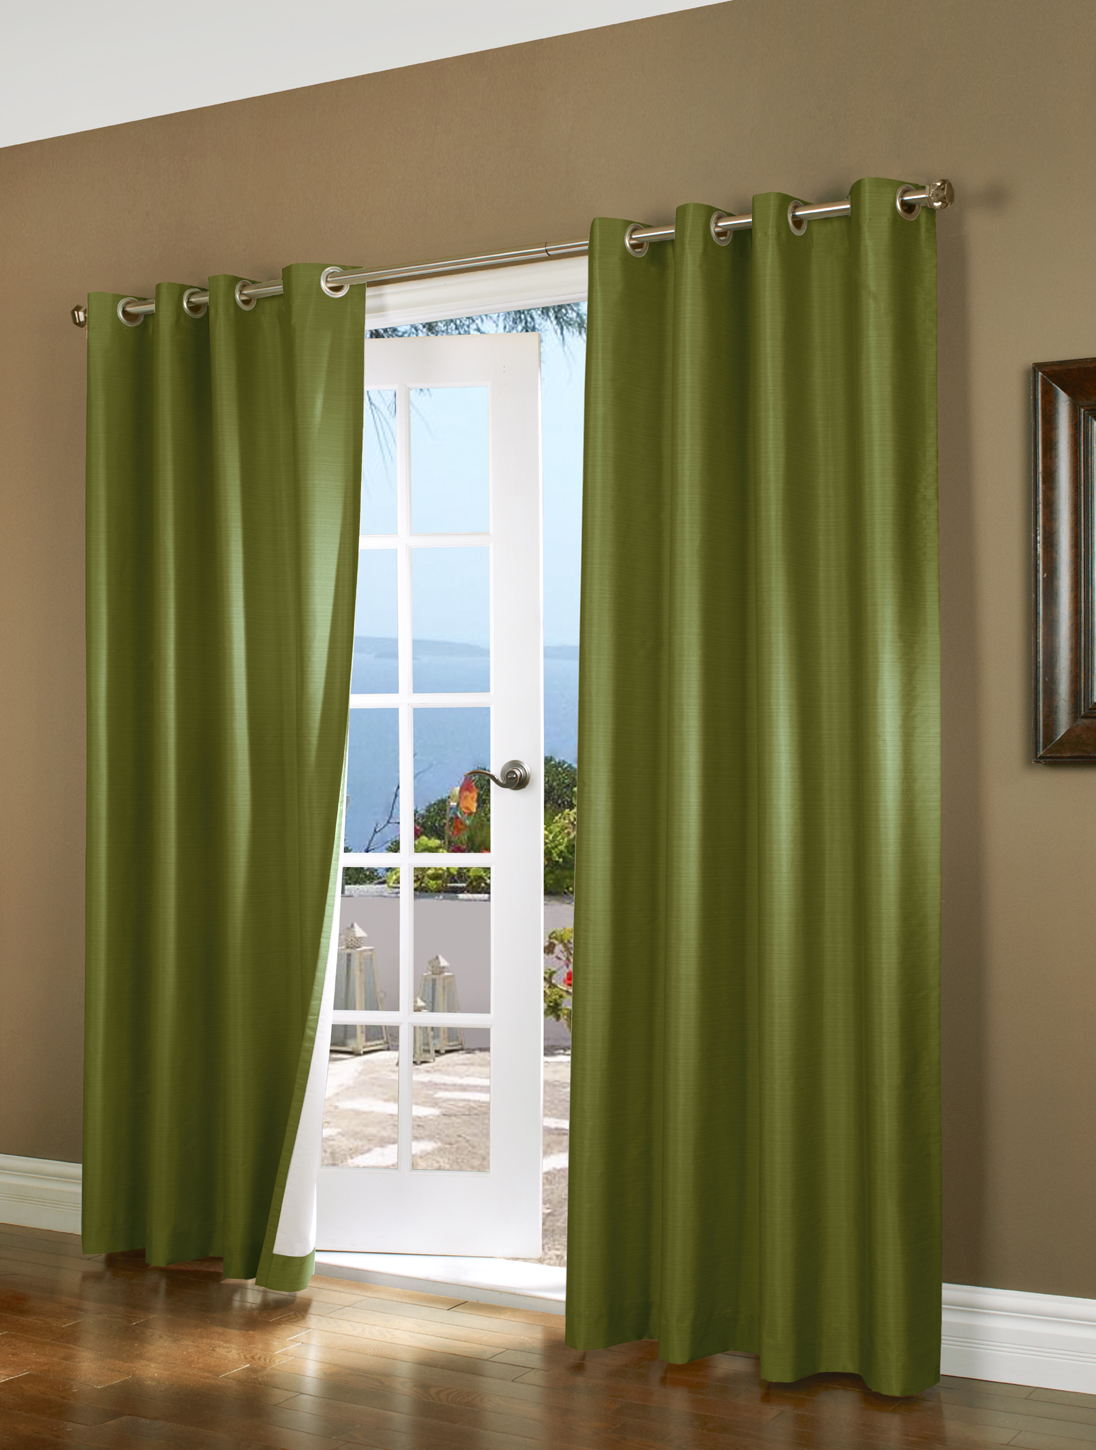 Thermal Lined Curtains | Thermal Insulated Curtains | Insulated Curtains and Drapes